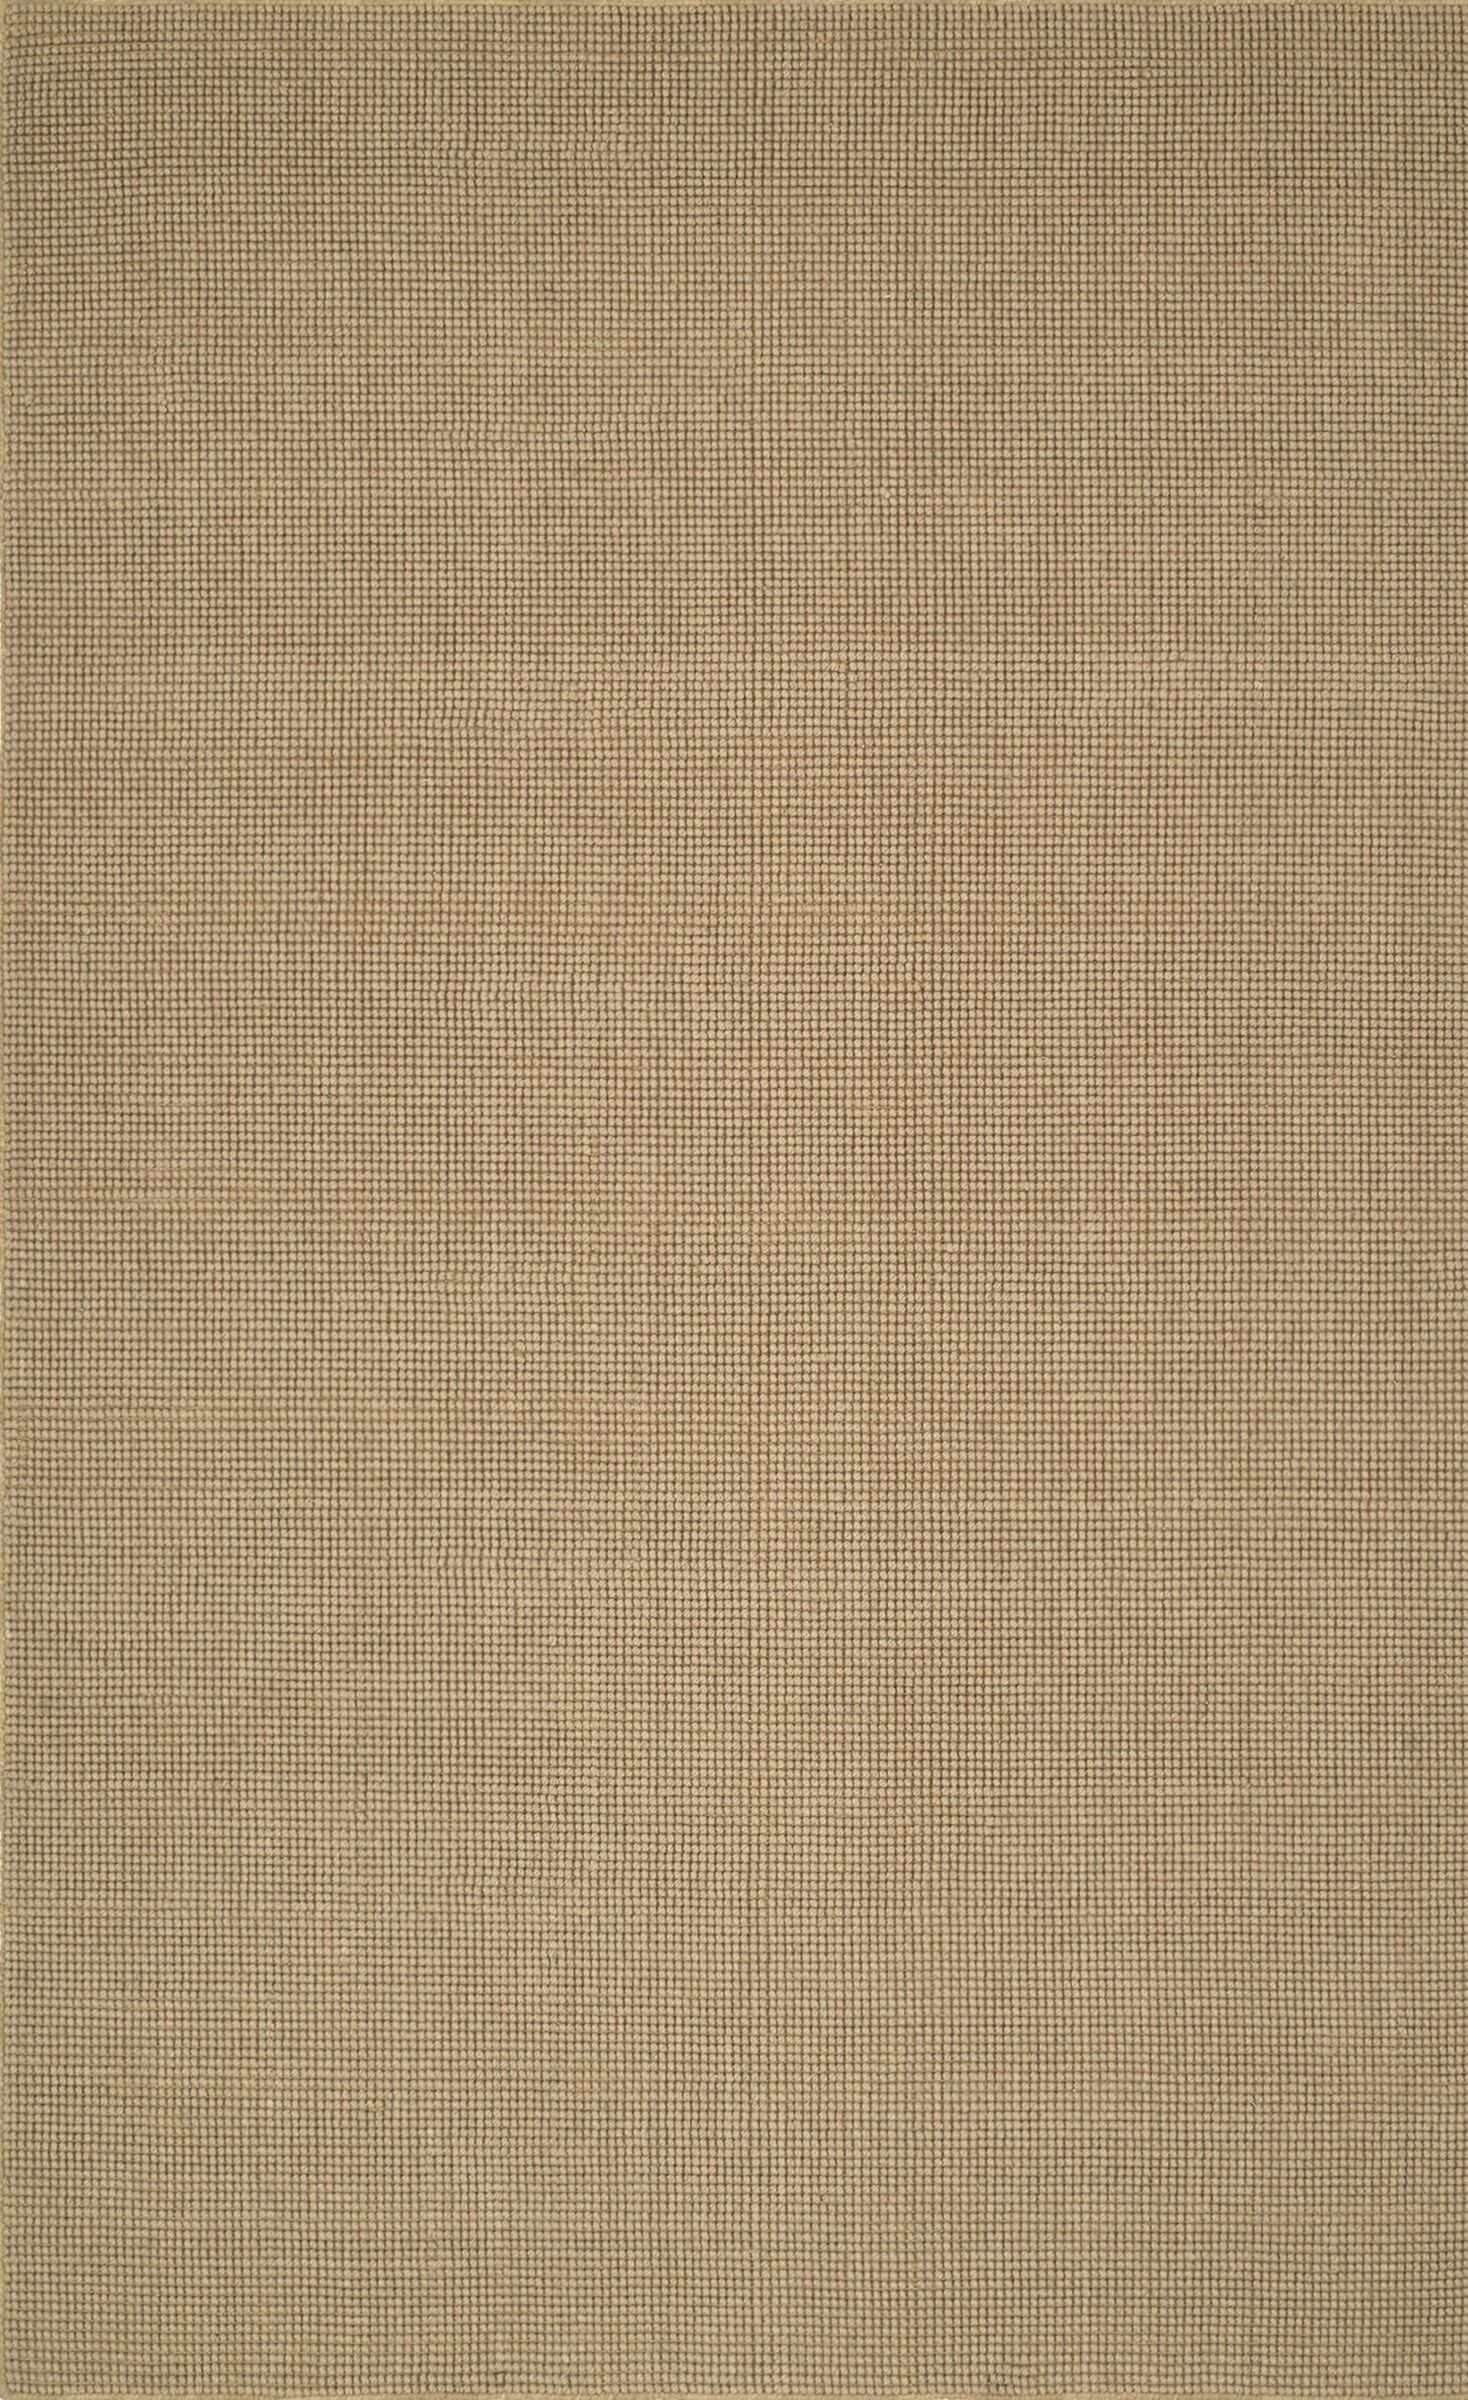 Dionne Hand-Tufted Wheat Area Rug Rug Size: Rectangle 5' x 8'